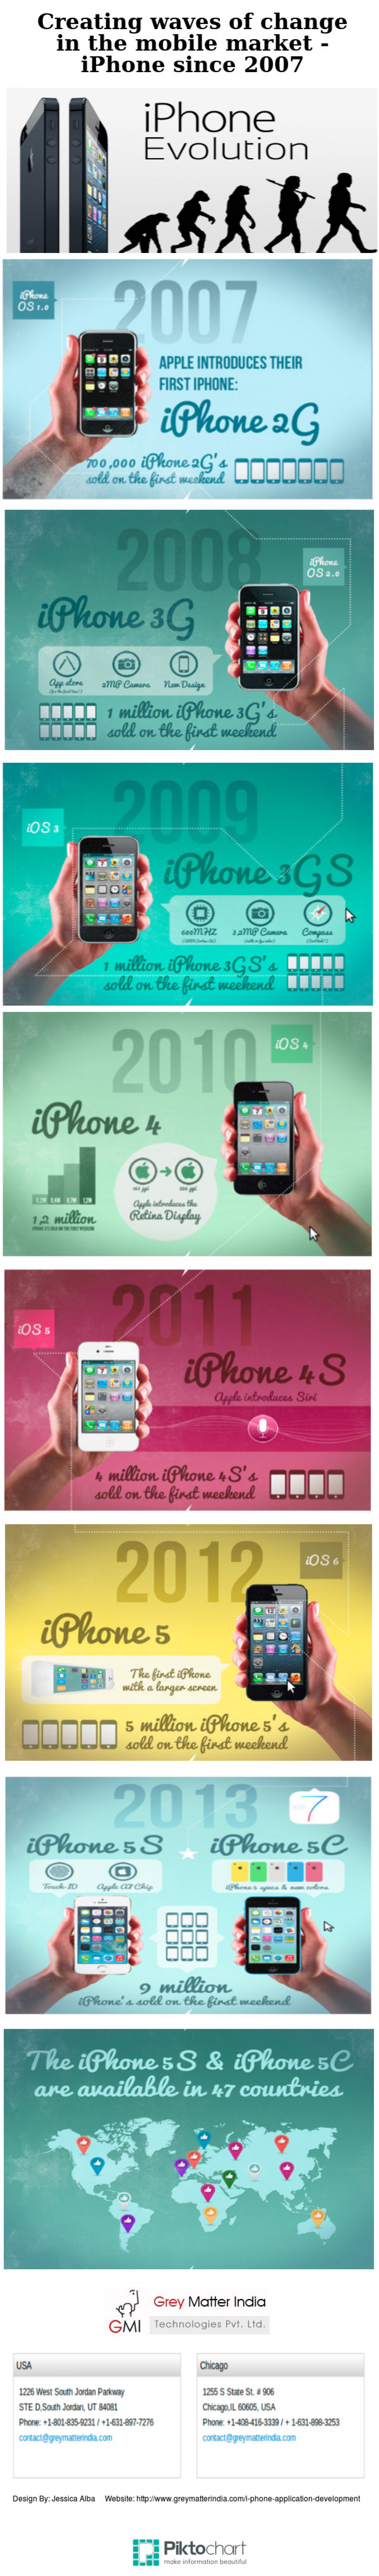 Creating Waves Of Change In The Mobile Market - iPhone Since 2007 Infographic